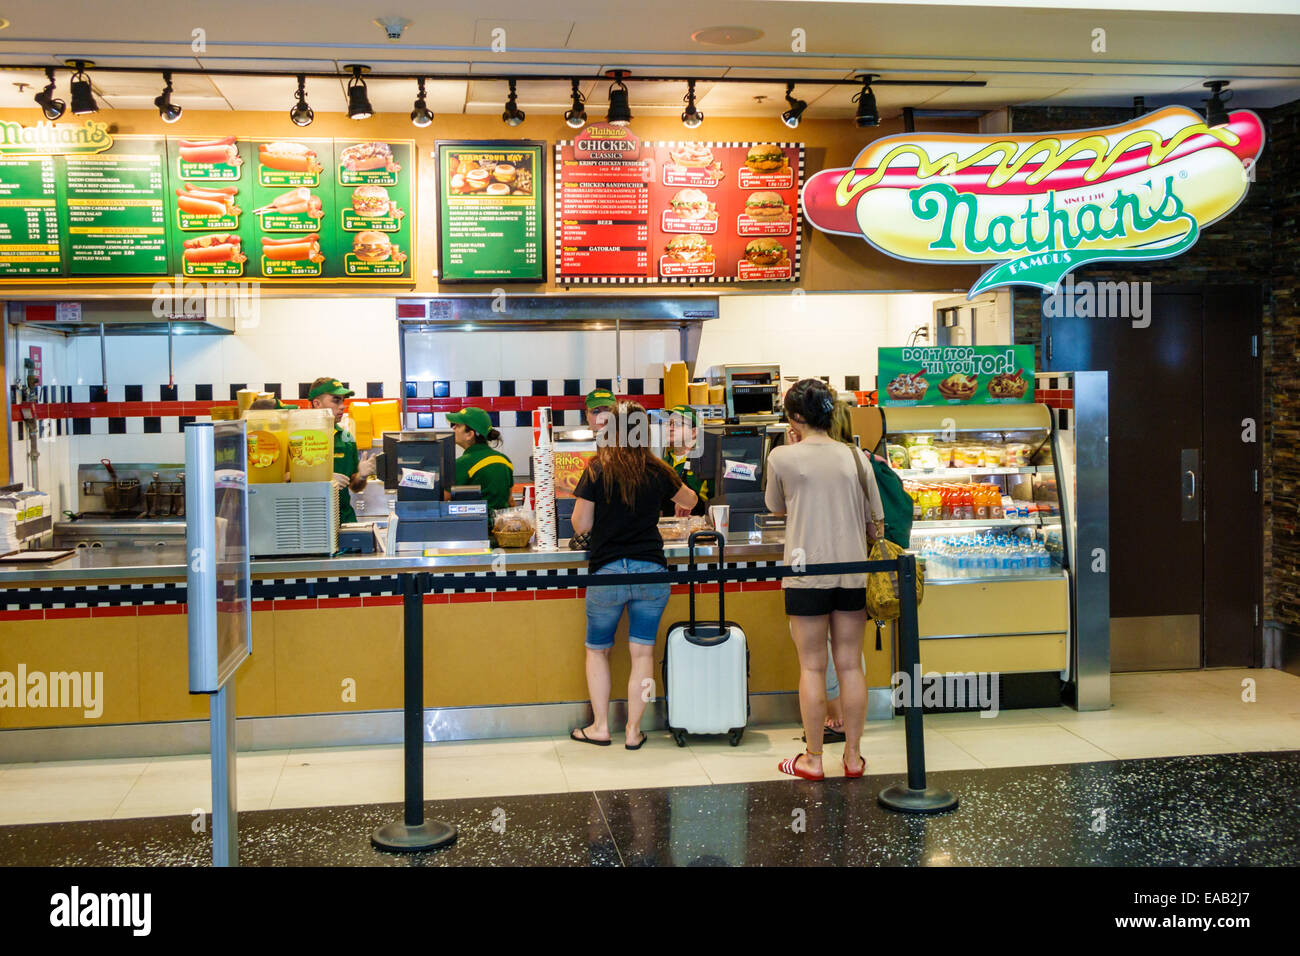 Nathan S Hot Dogs Miami Airport